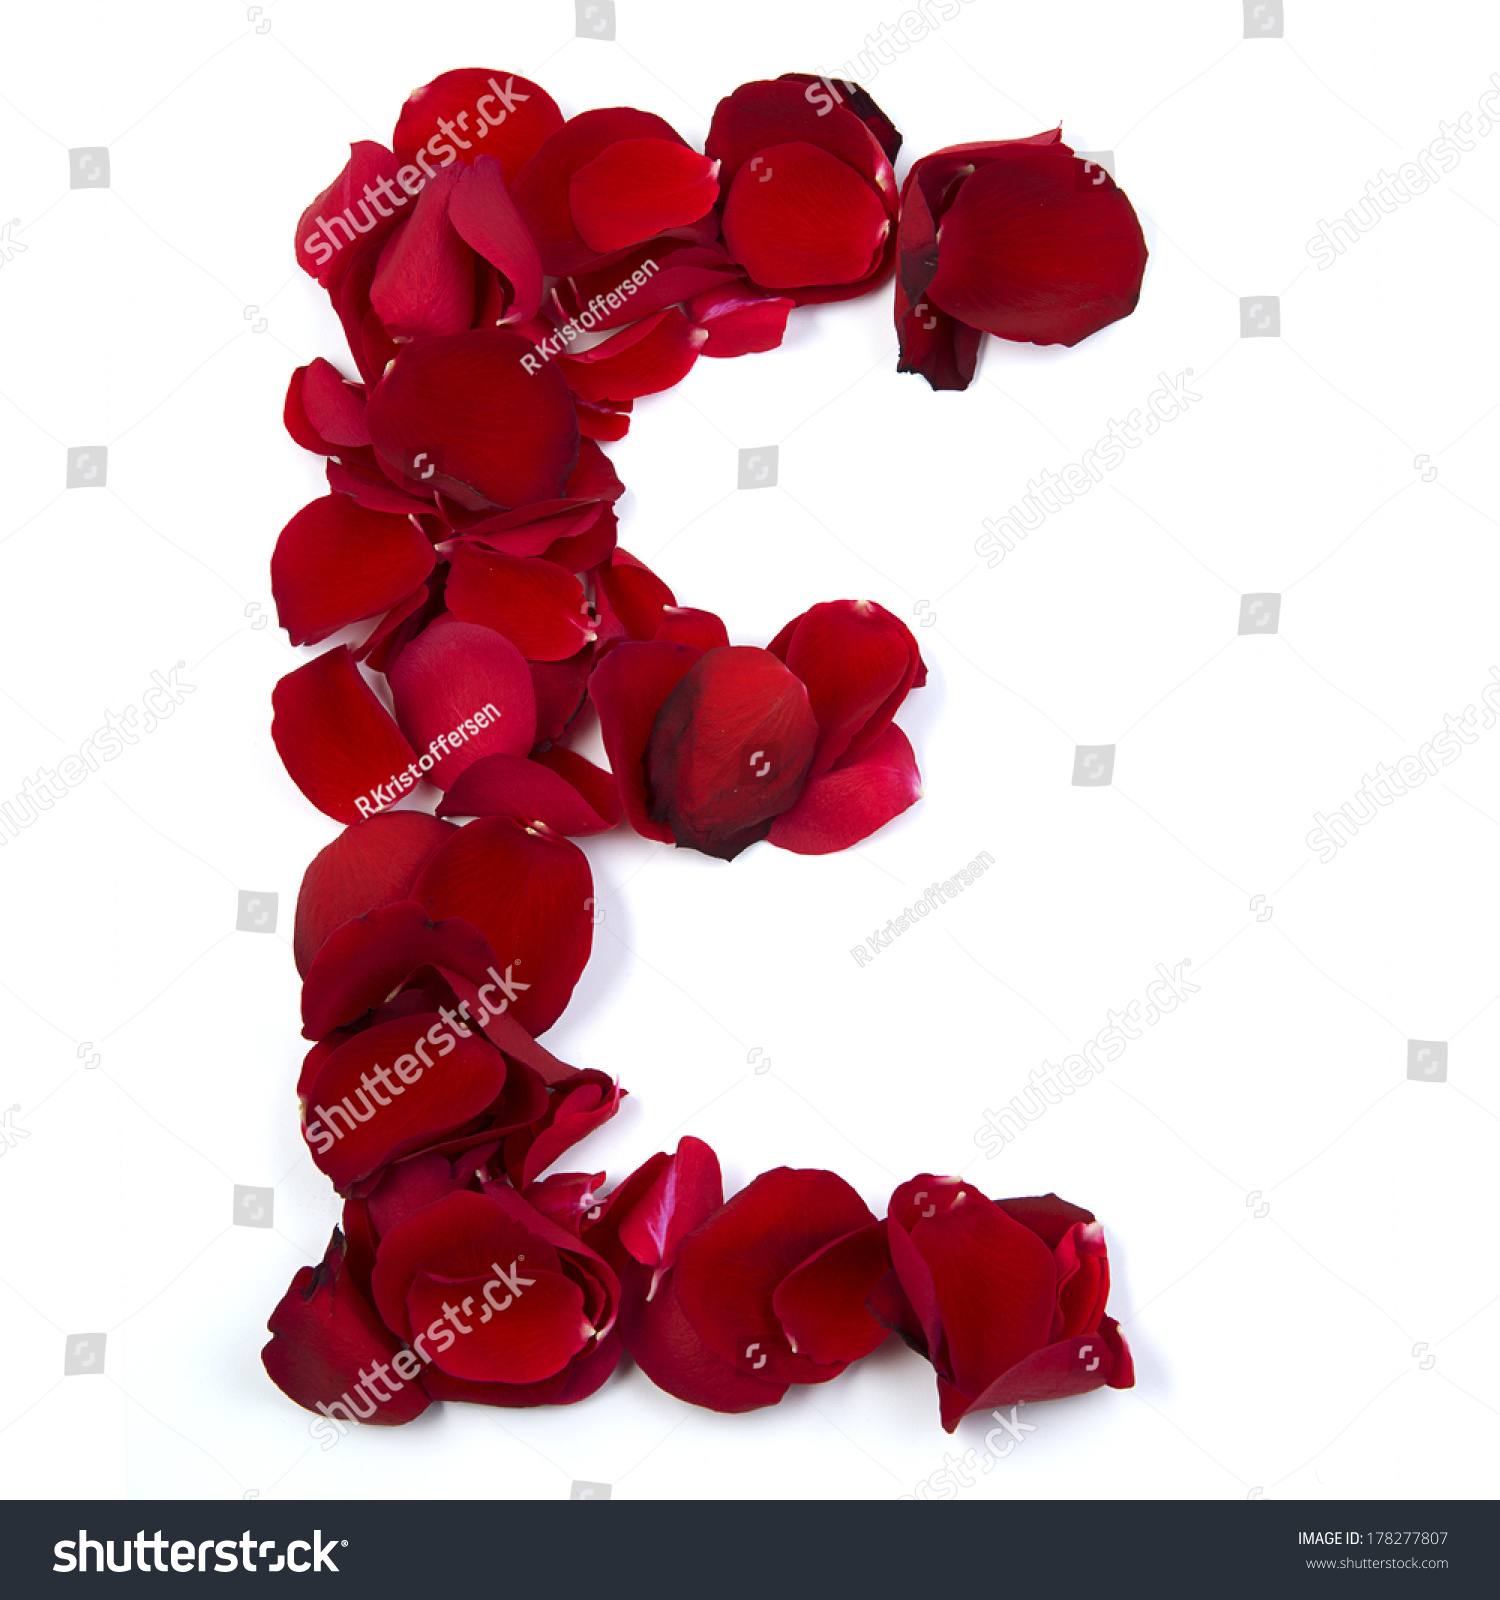 Letter E Ending Love Written Rose Stock Photo 178277807 ...